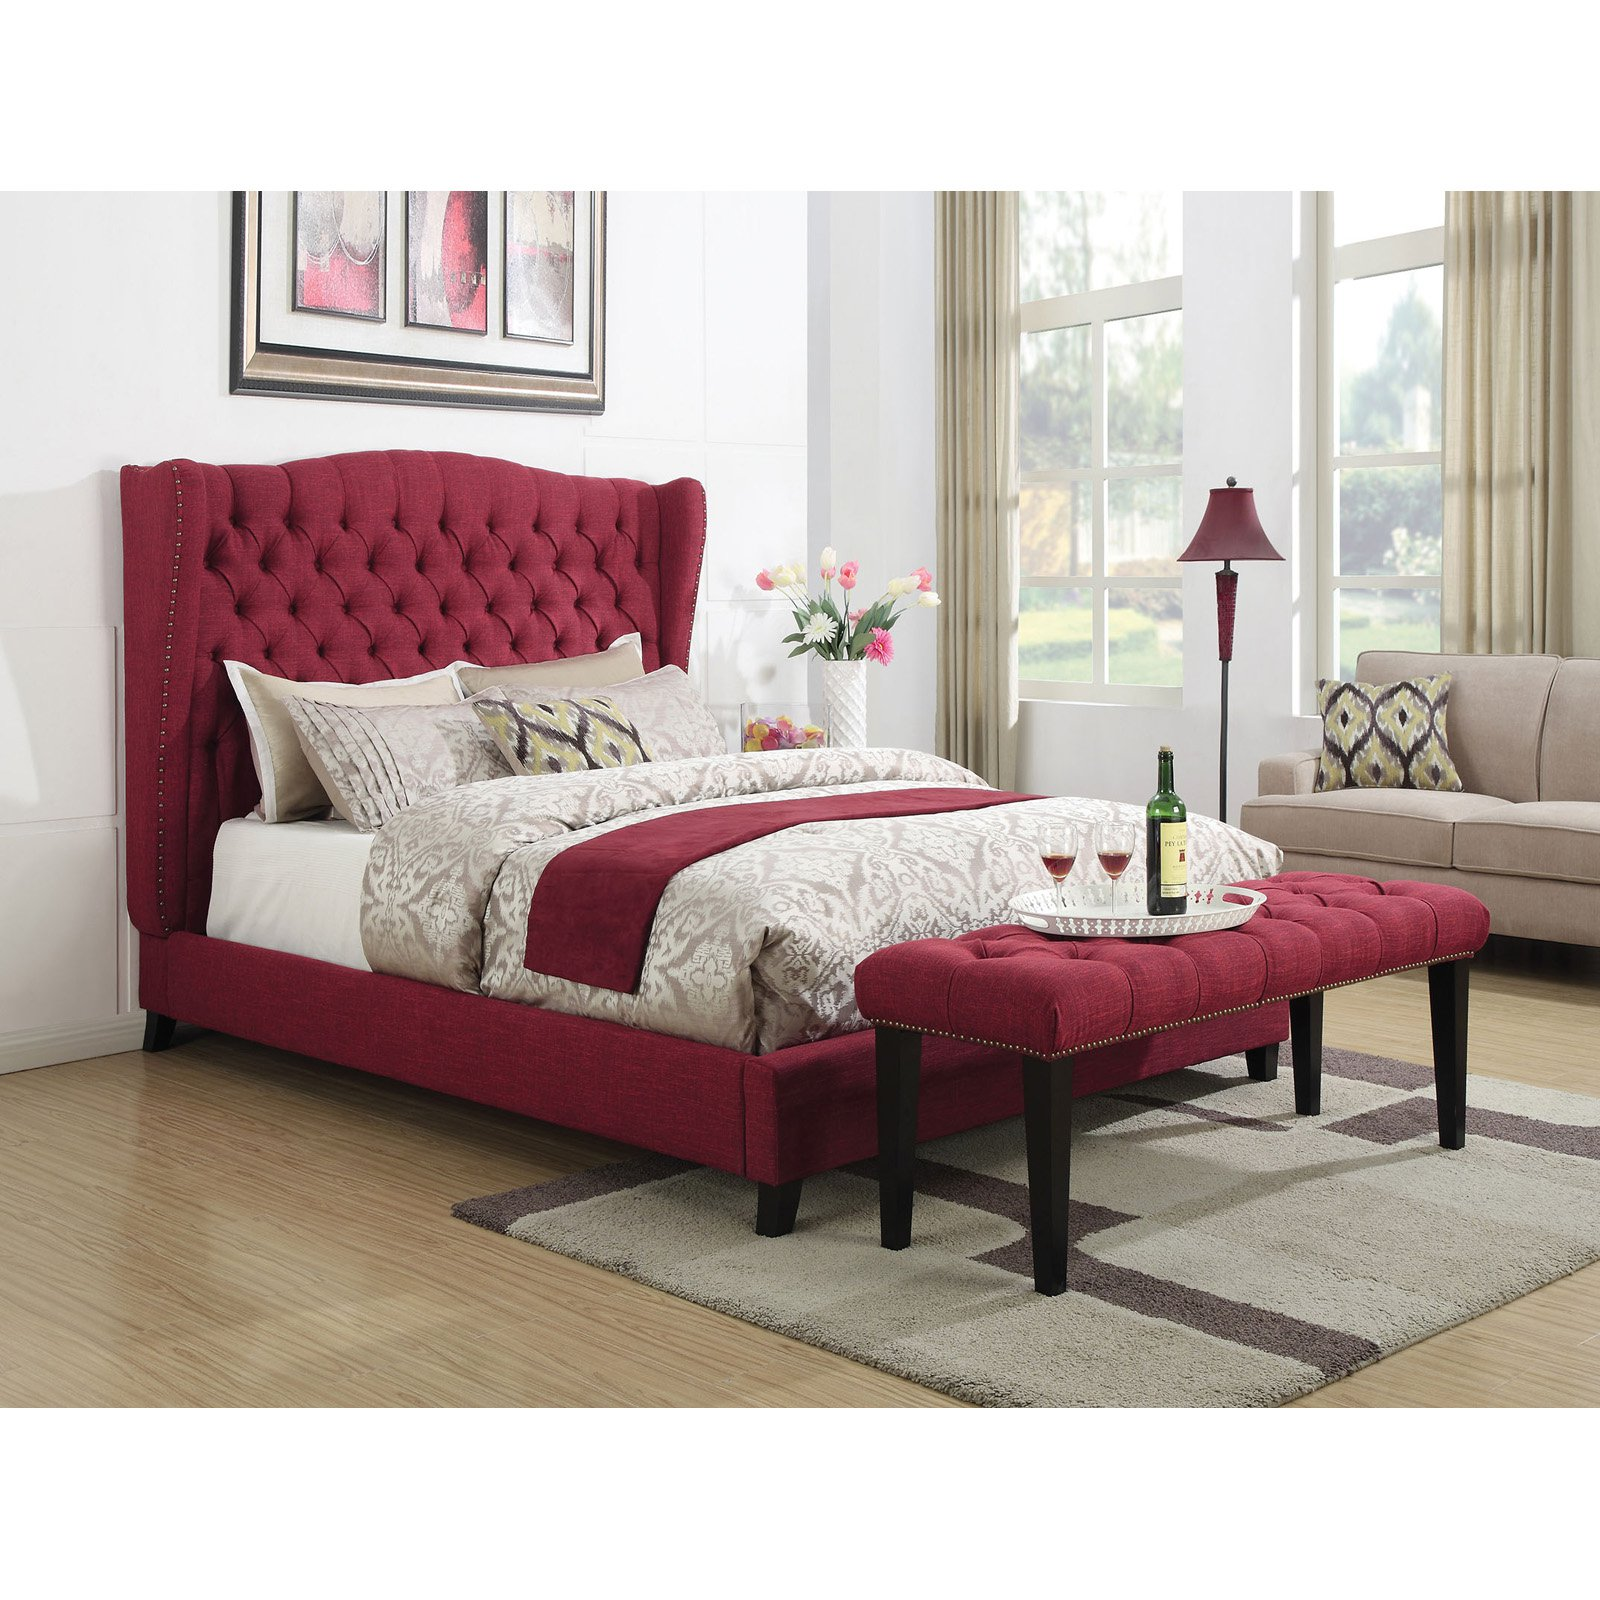 ACME Faye Queen Bed with Button Tufted Headboard in Red Linen, Multiple Sizes